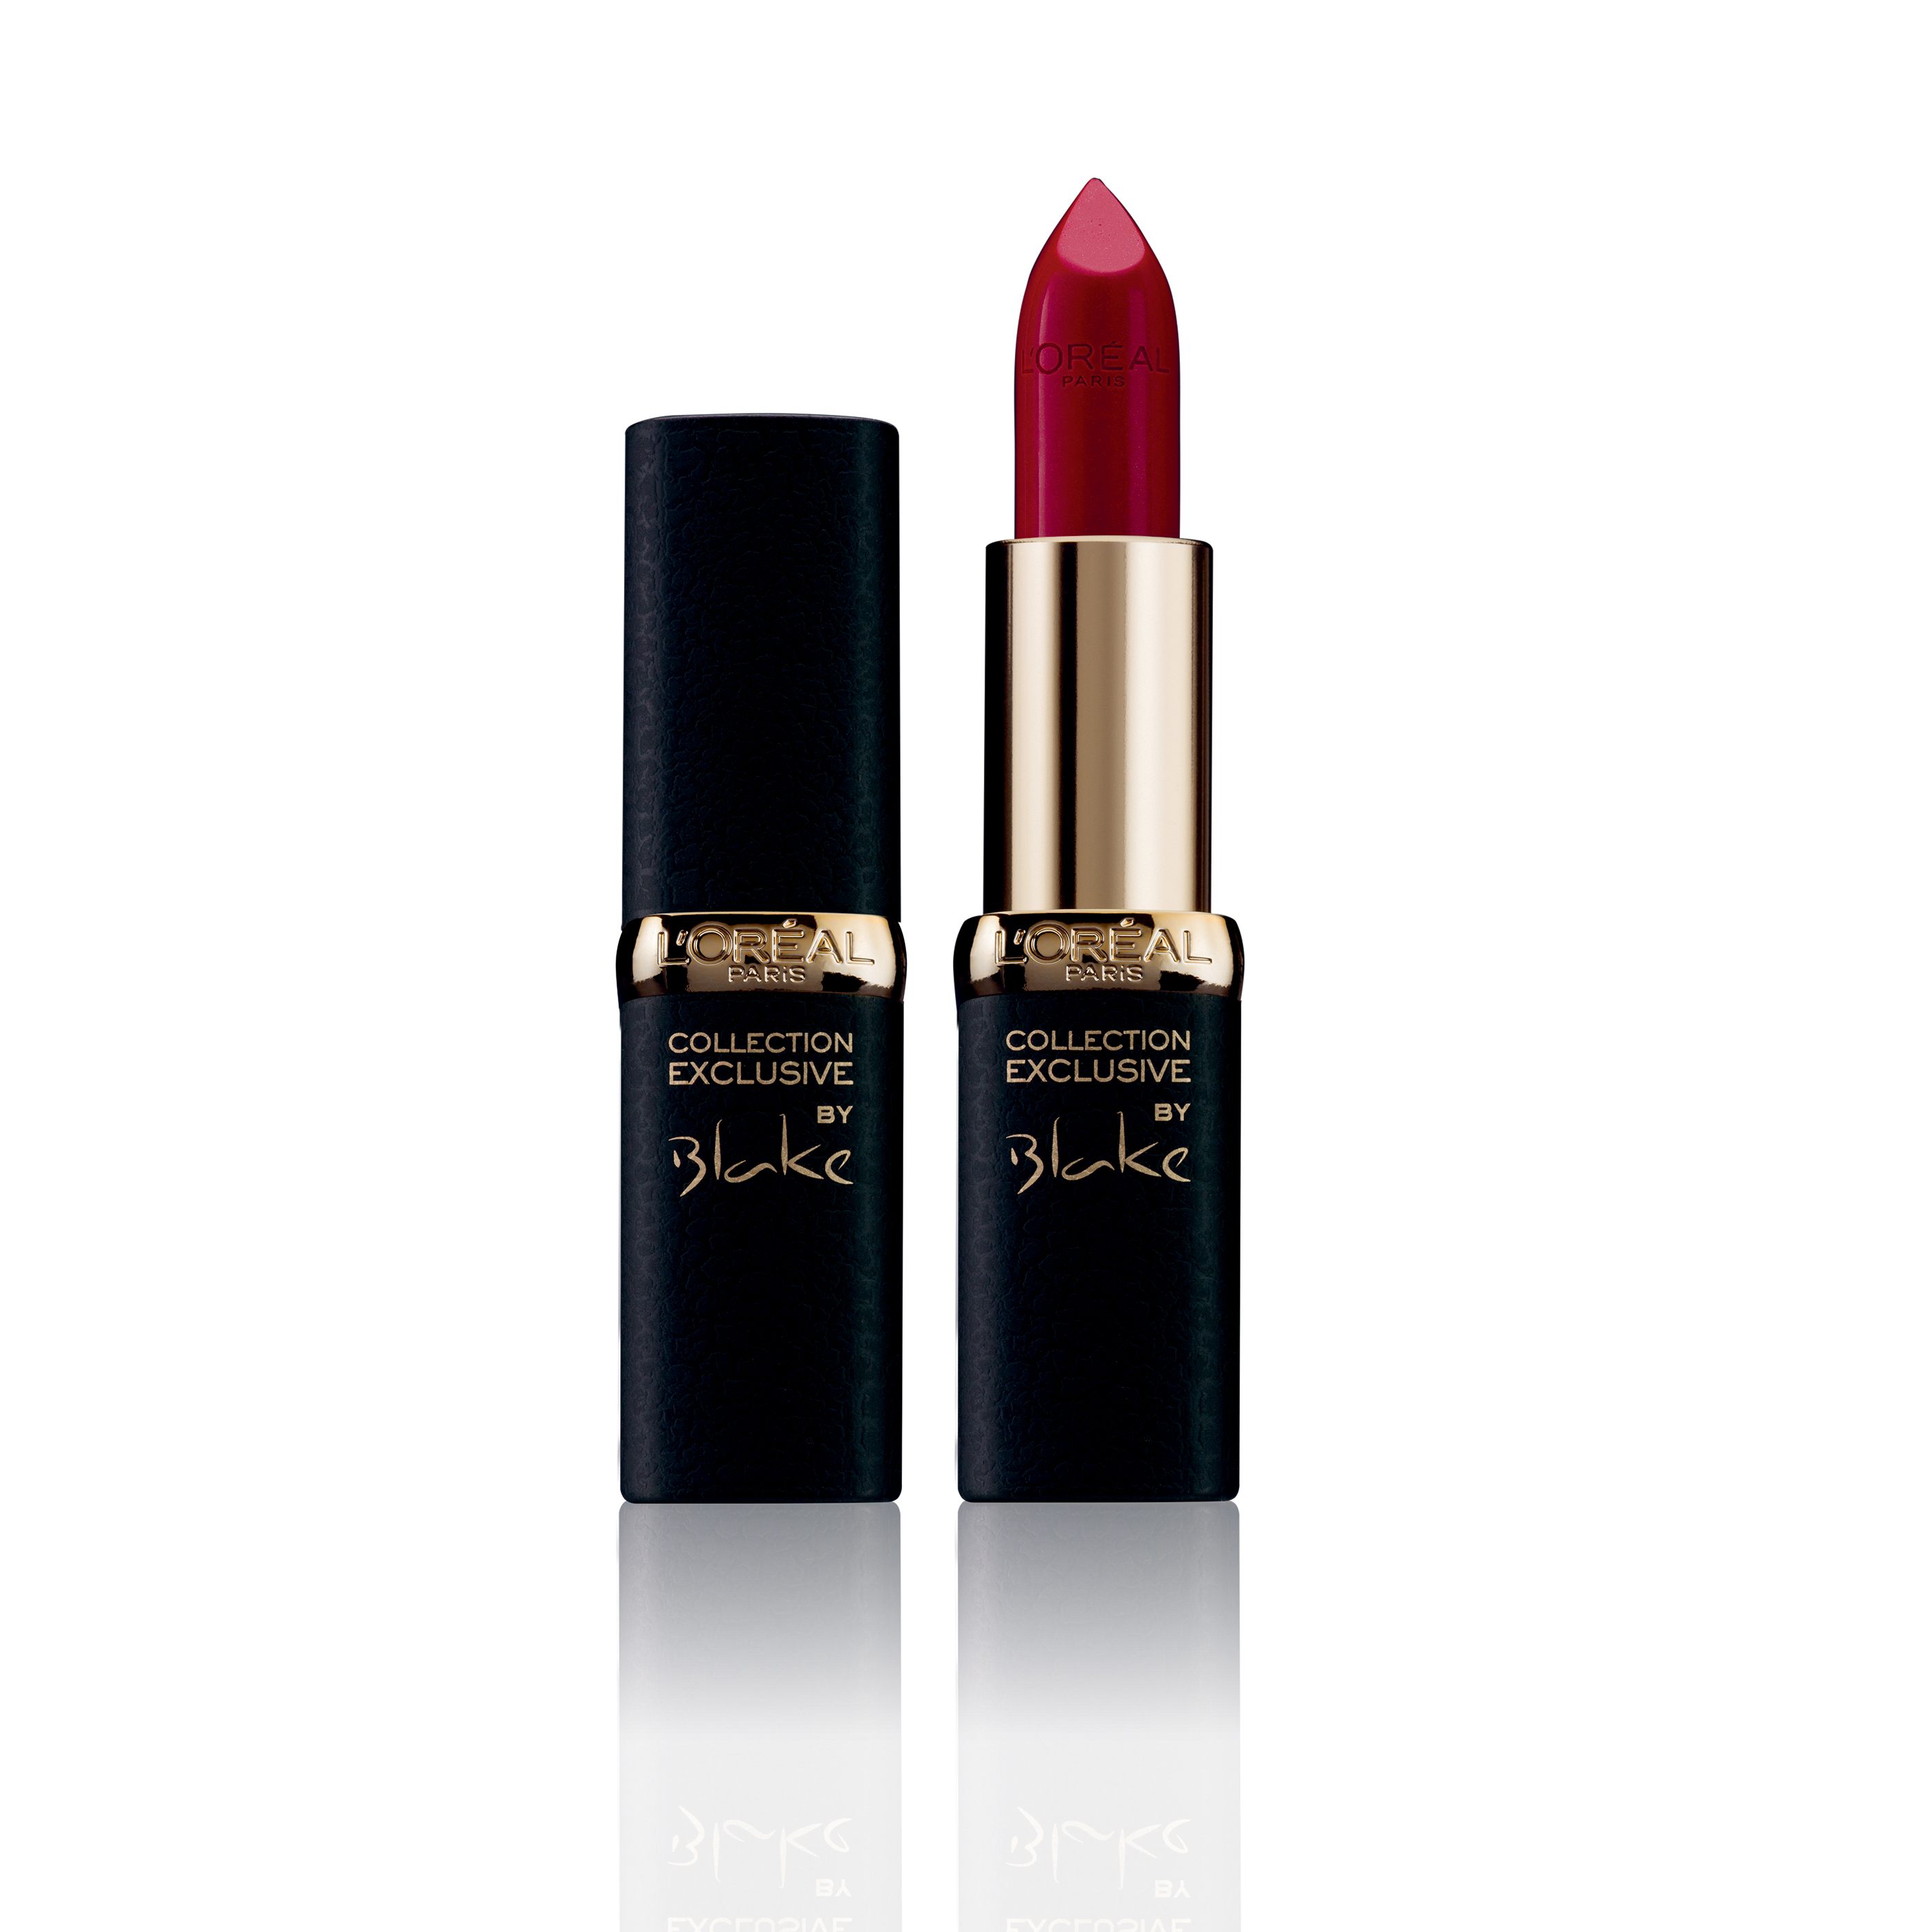 Pintalabios rojo mate Blake Lively Collection Exclusive de L'Oréal Paris